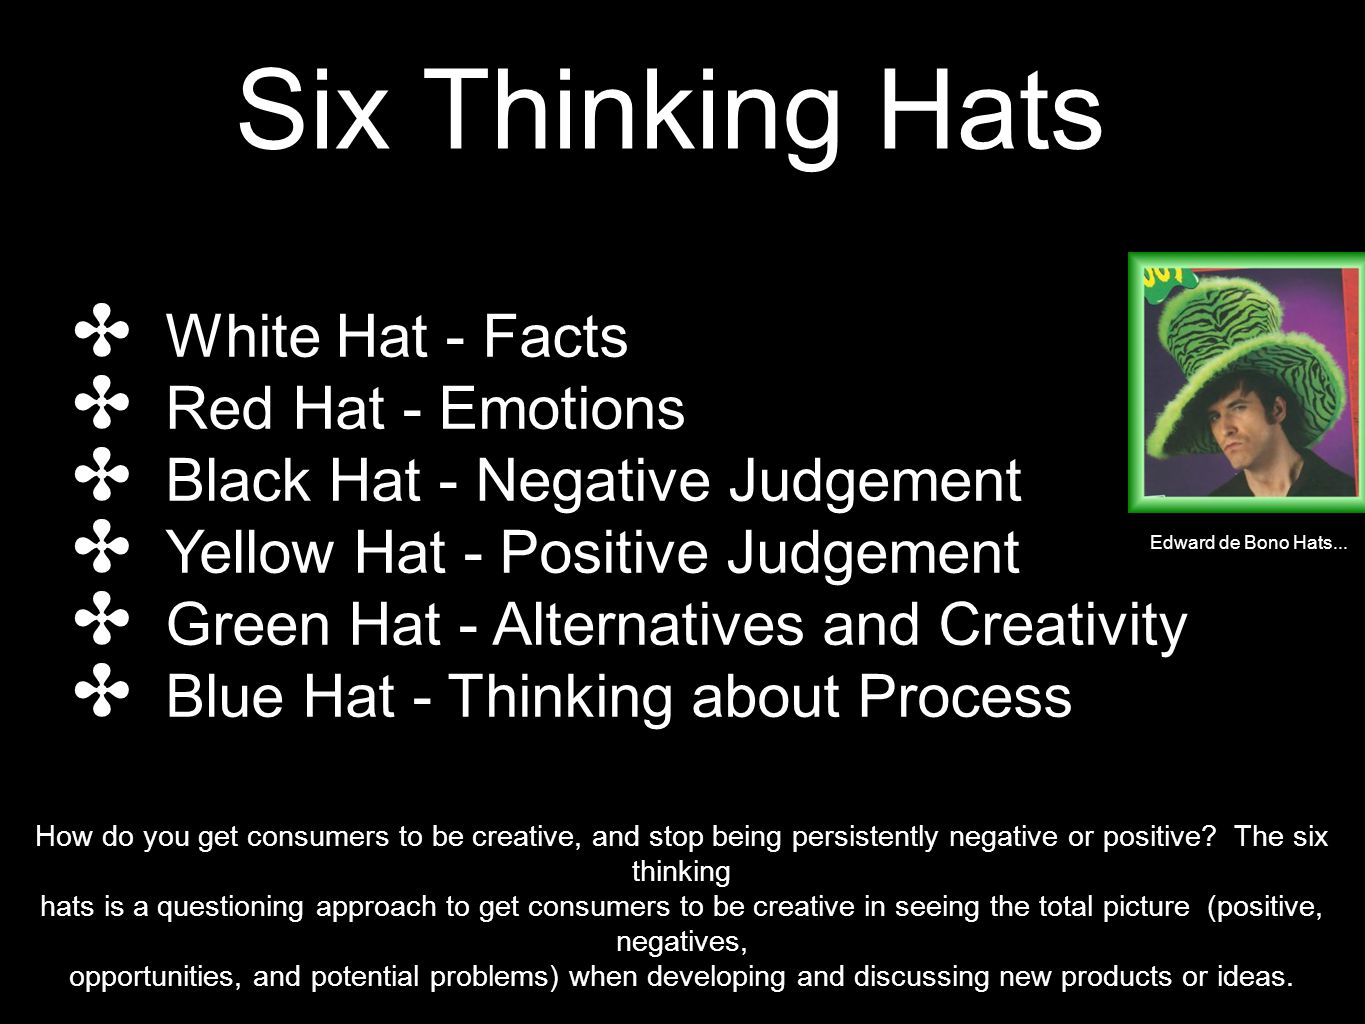 Six Thinking Hats ✤ White Hat - Facts ✤ Red Hat - Emotions ✤ Black Hat - Negative Judgement ✤ Yellow Hat - Positive Judgement ✤ Green Hat - Alternatives and Creativity ✤ Blue Hat - Thinking about Process Edward de Bono Hats...